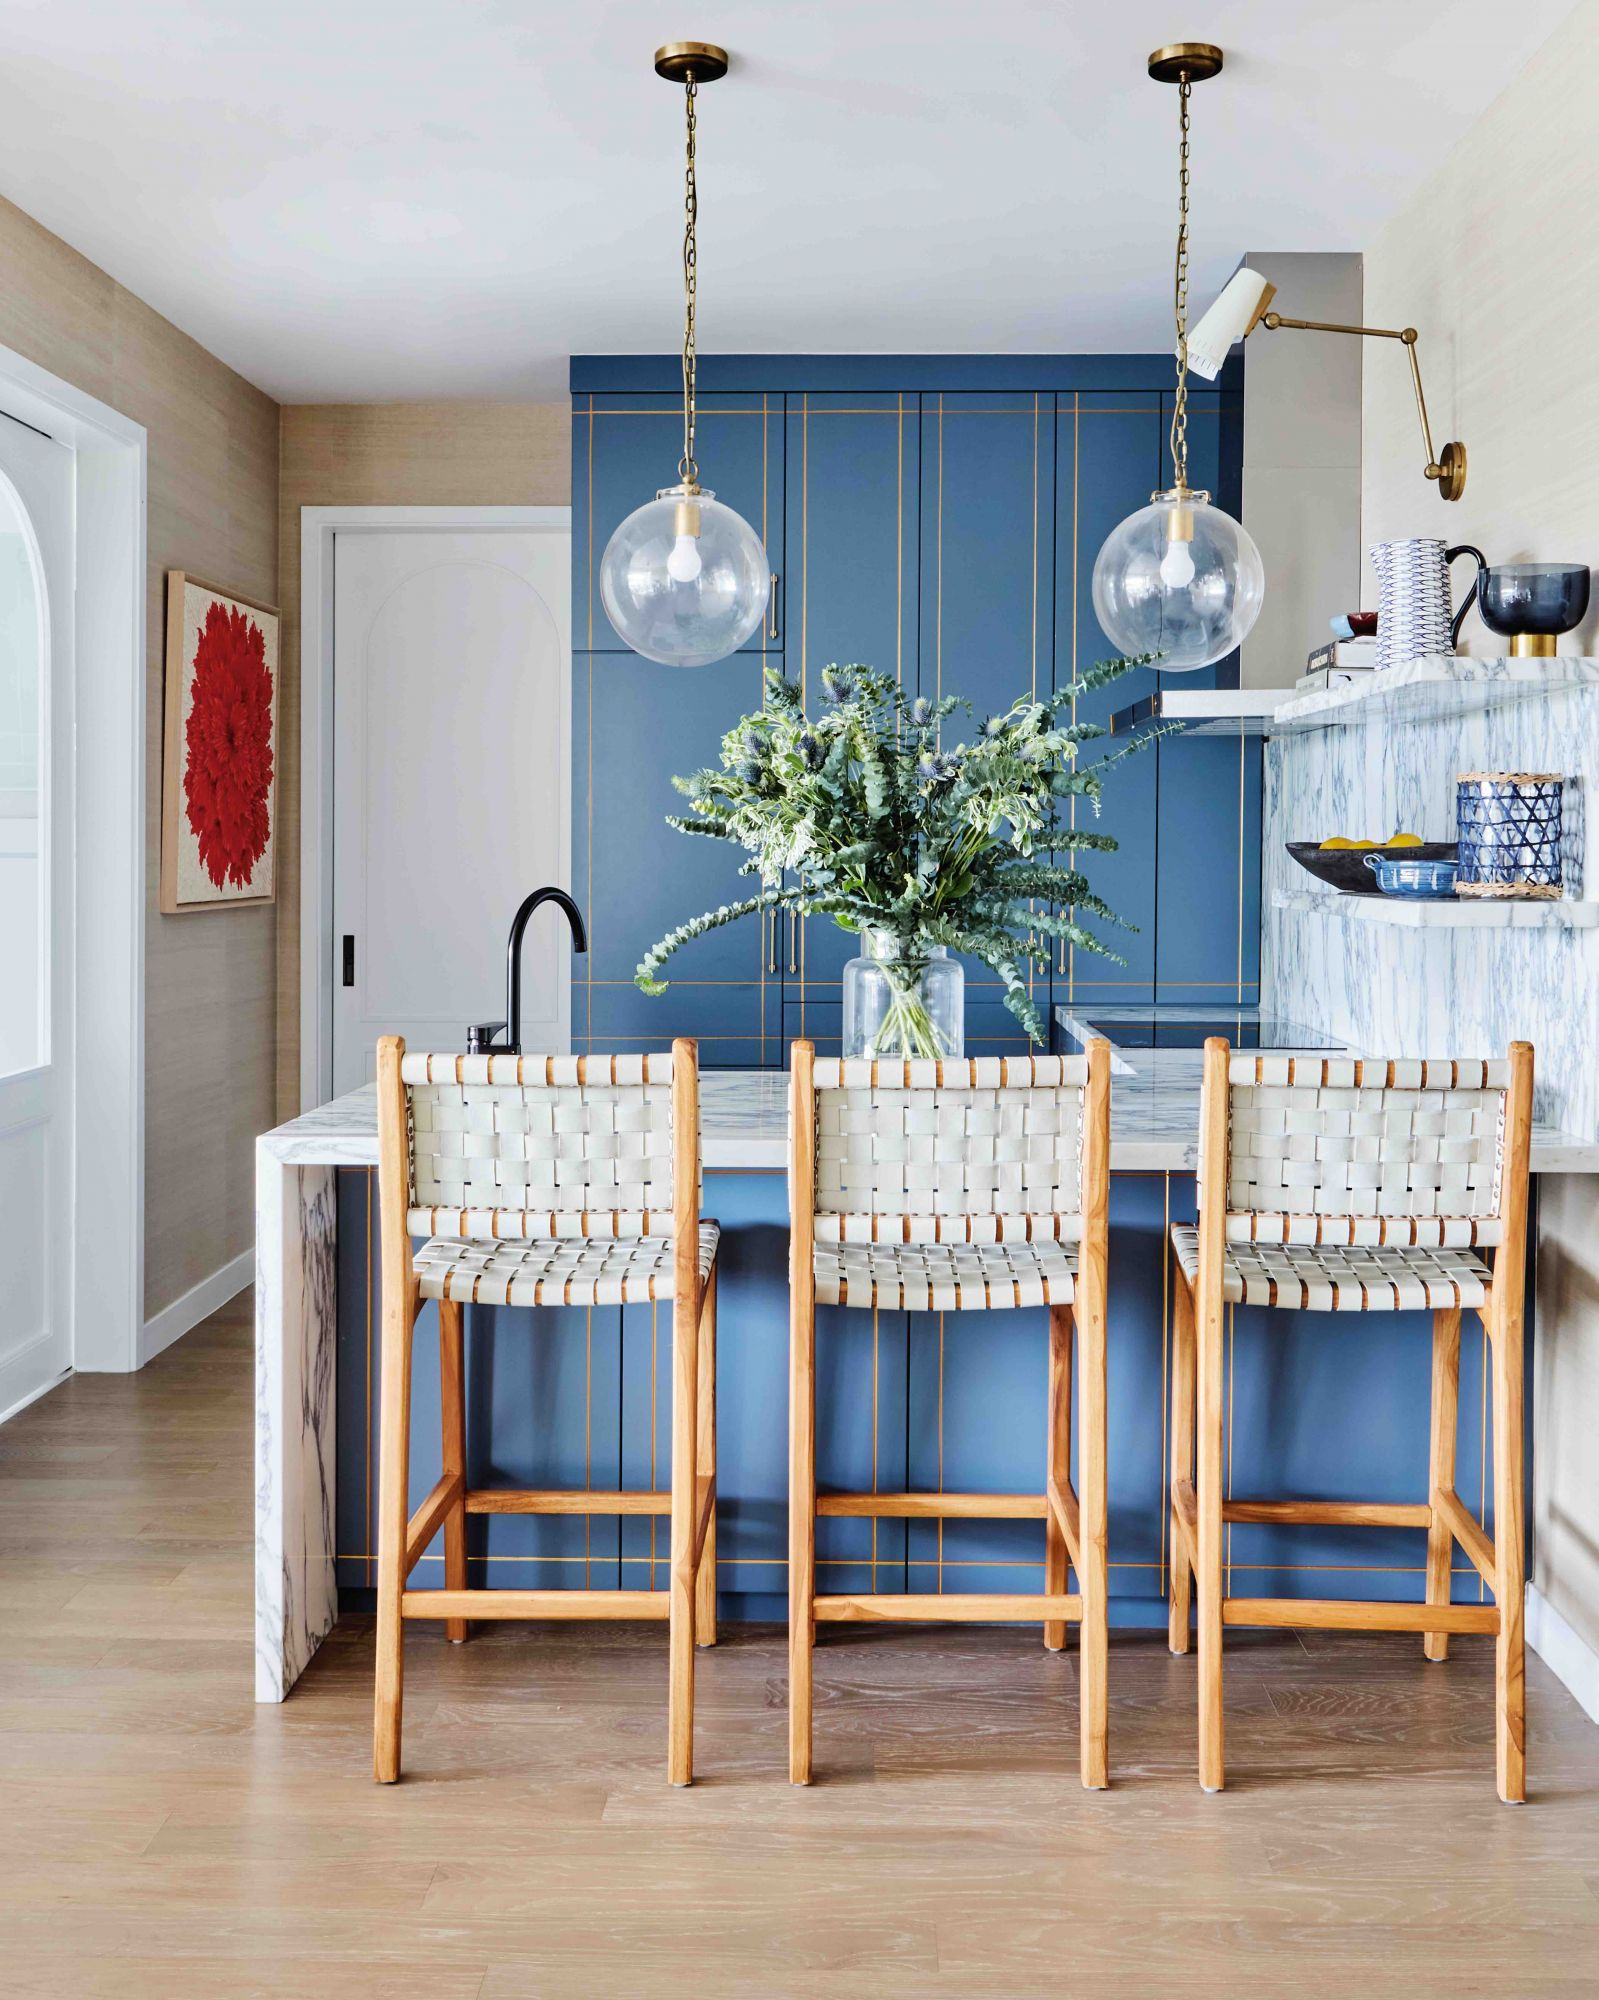 12 Kitchen Design Trends To Incorporate In Your Own Home Tatler Malaysia